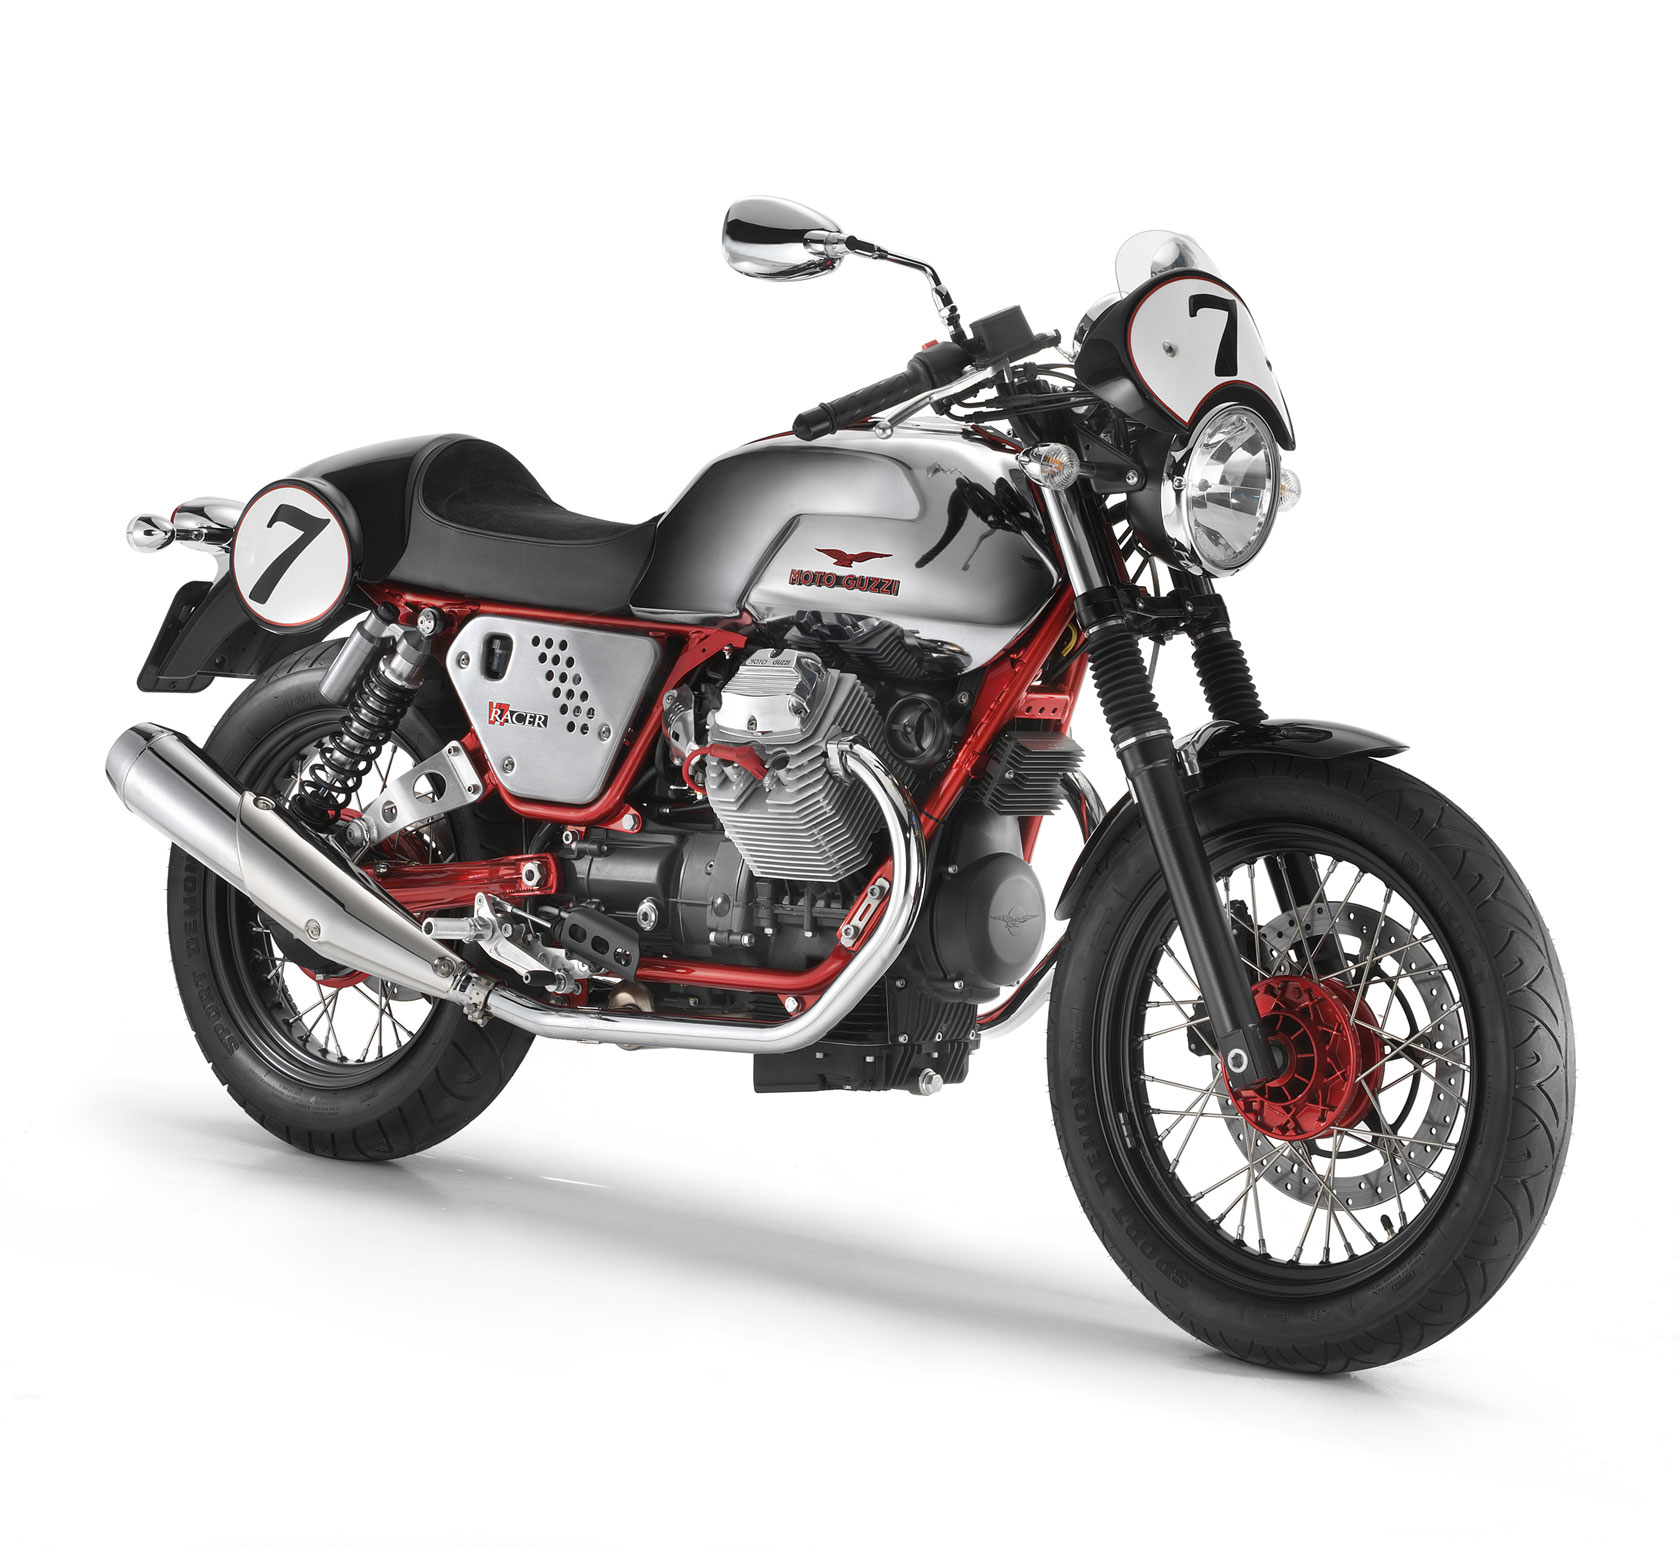 Moto Guzzi V7 Racer Limited Edition 2011 images #109577